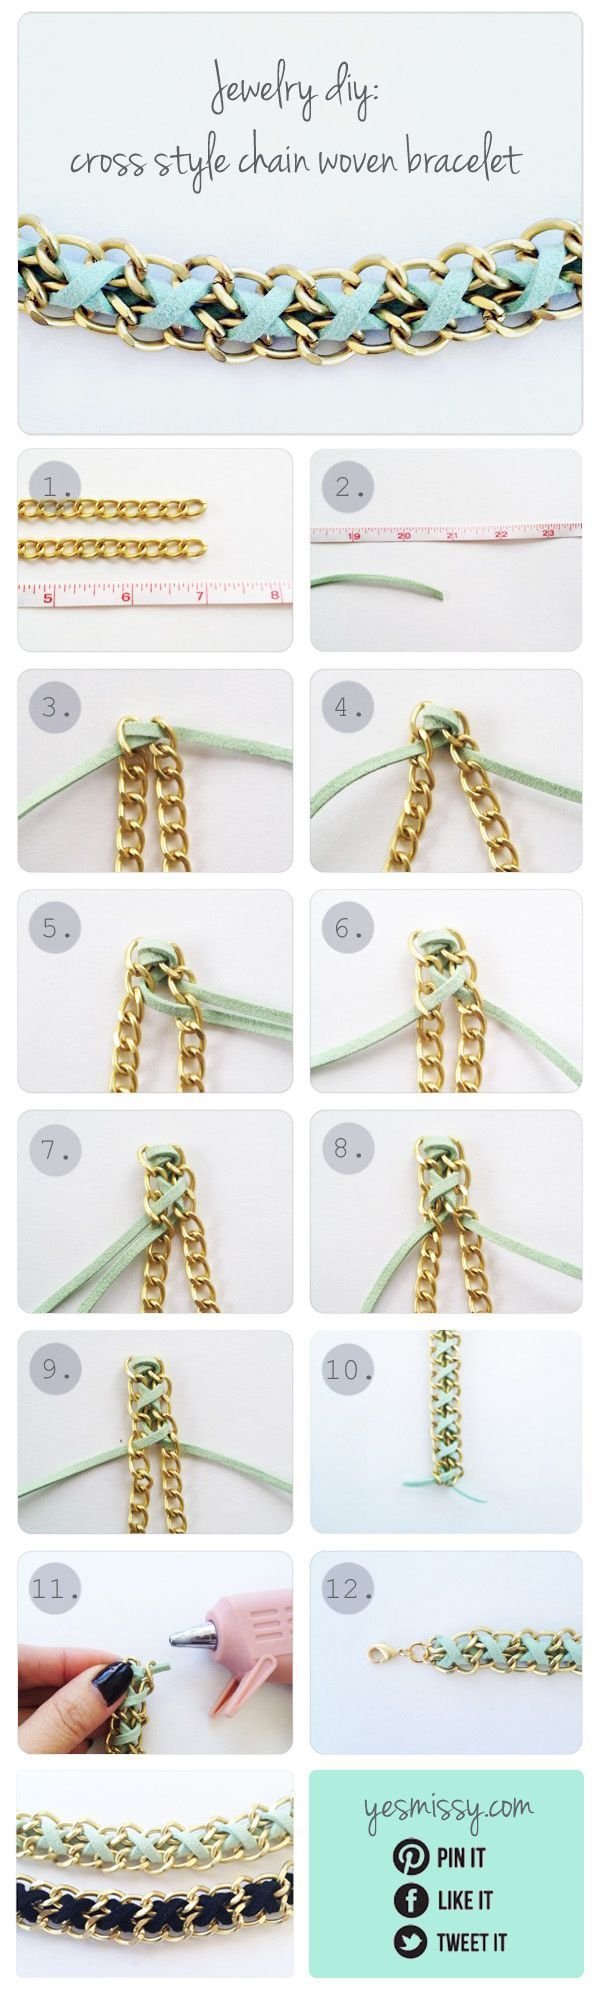 best bracelets images on pinterest diy jewelry crafts and